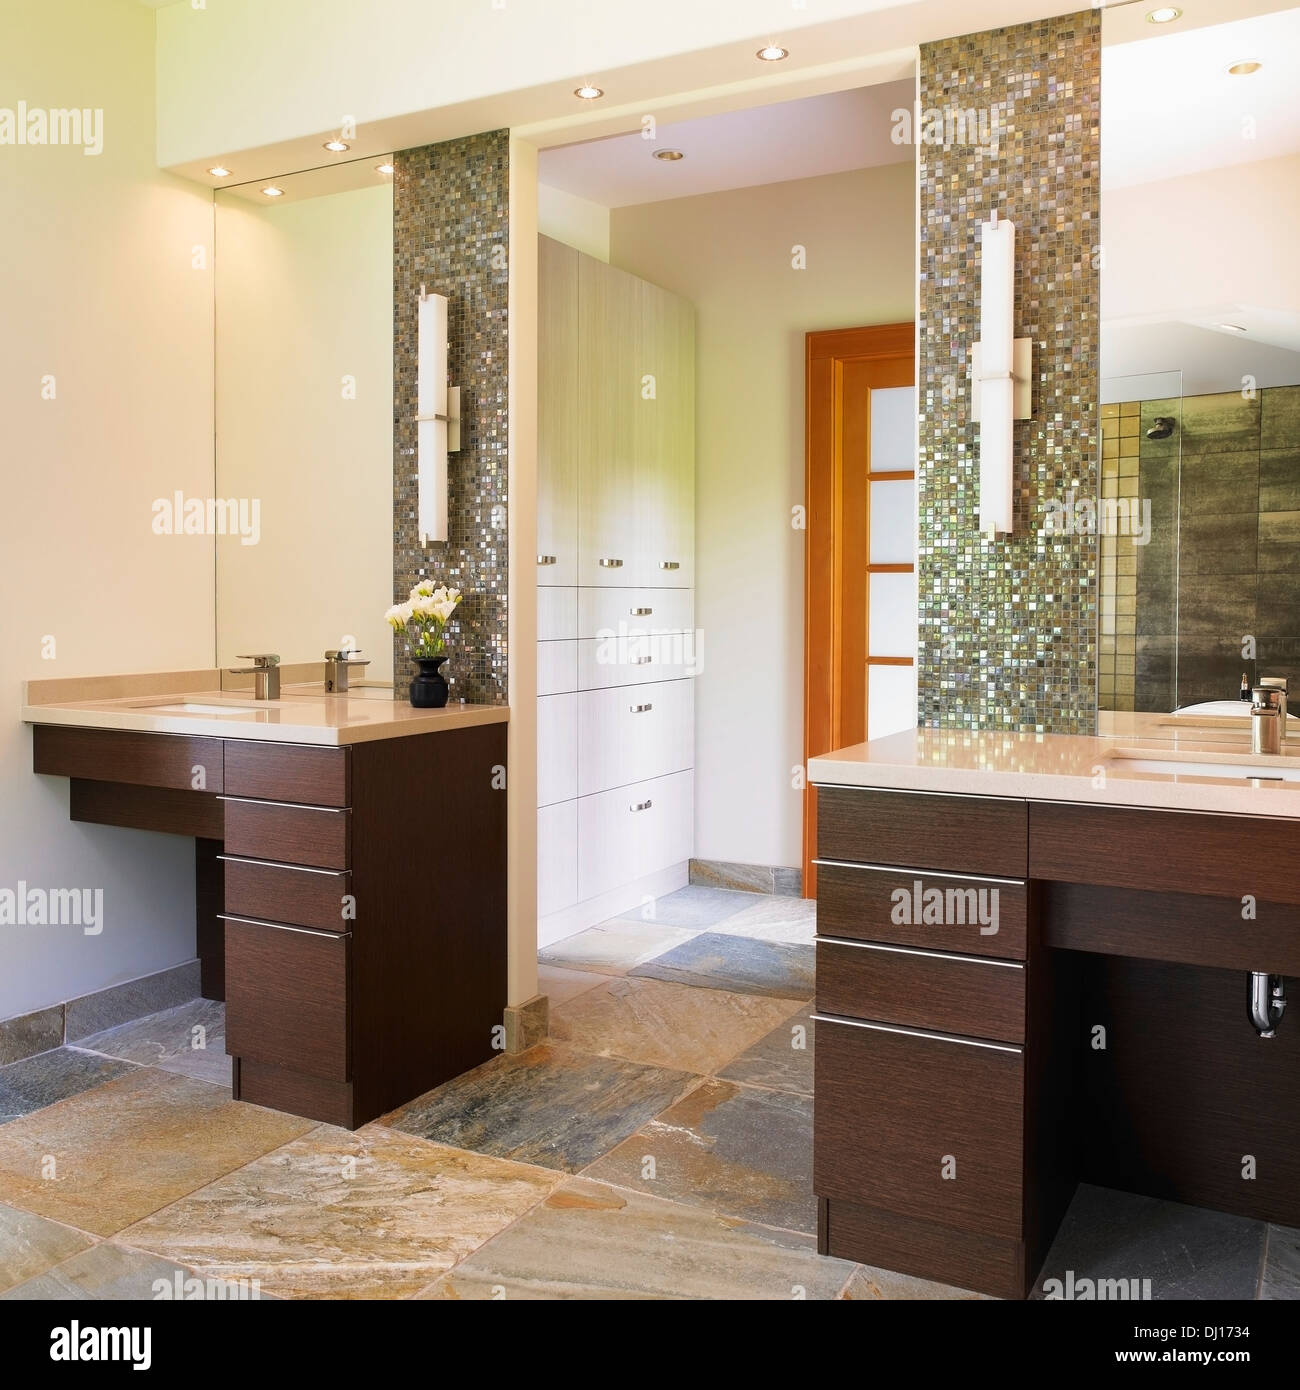 Master Bathroom With 2 Vanities Leading Into Walk In Closet Stock Photo Royalty Free Image